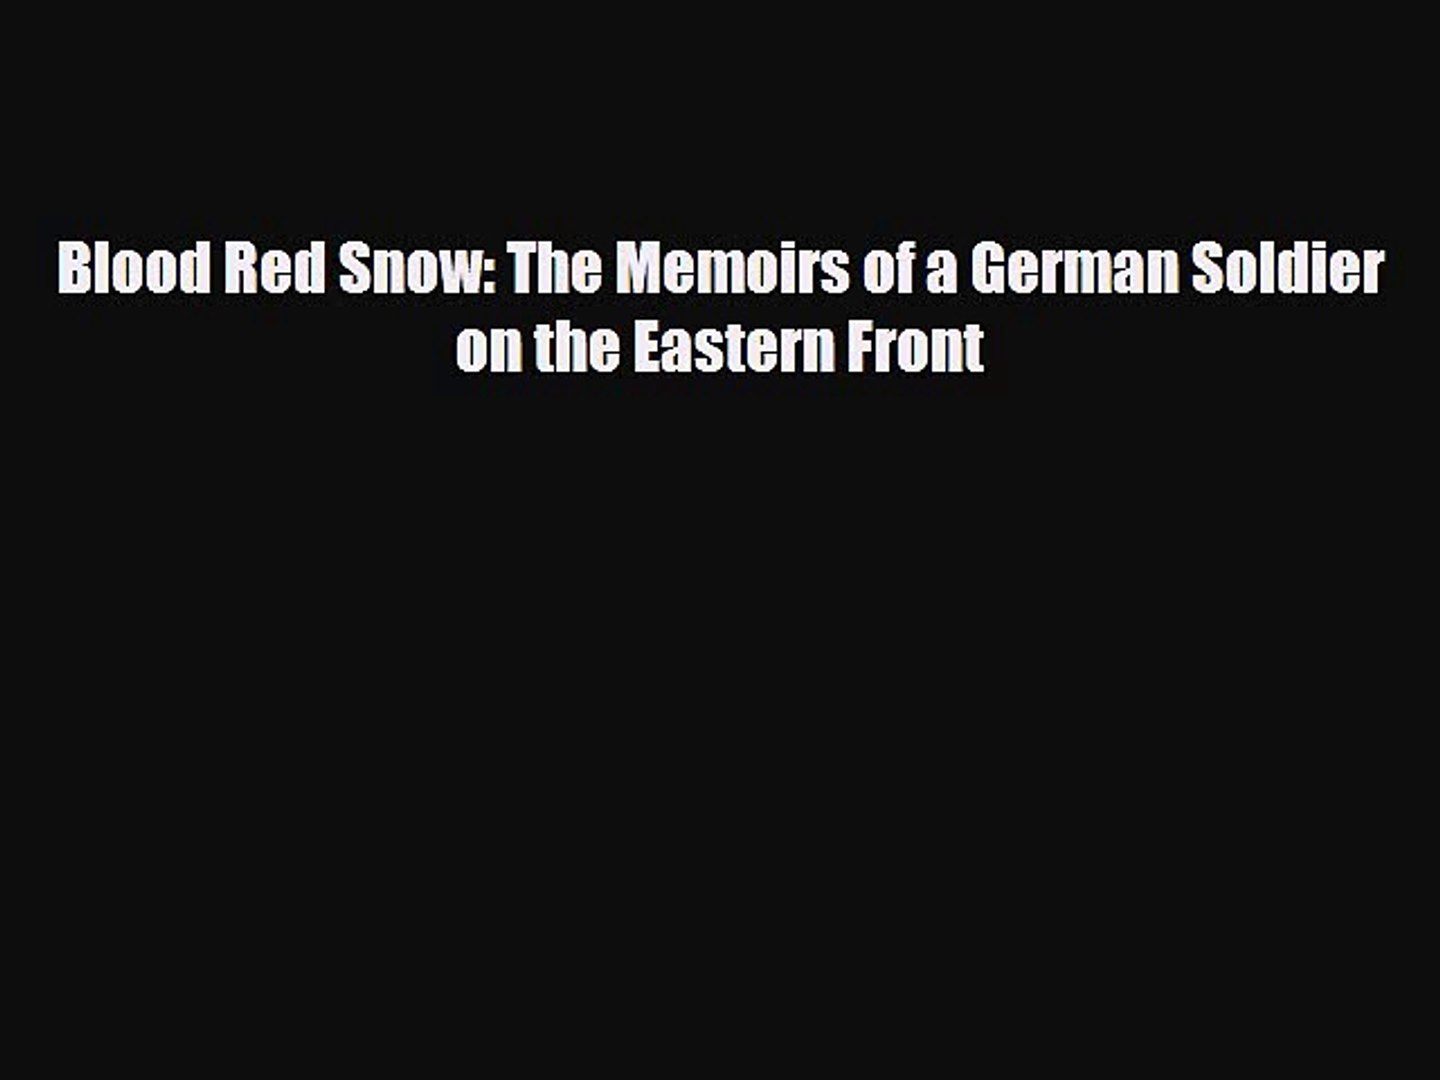 Read Books Blood Red Snow: The Memoirs of a German Soldier on the Eastern Front ebook textbooks